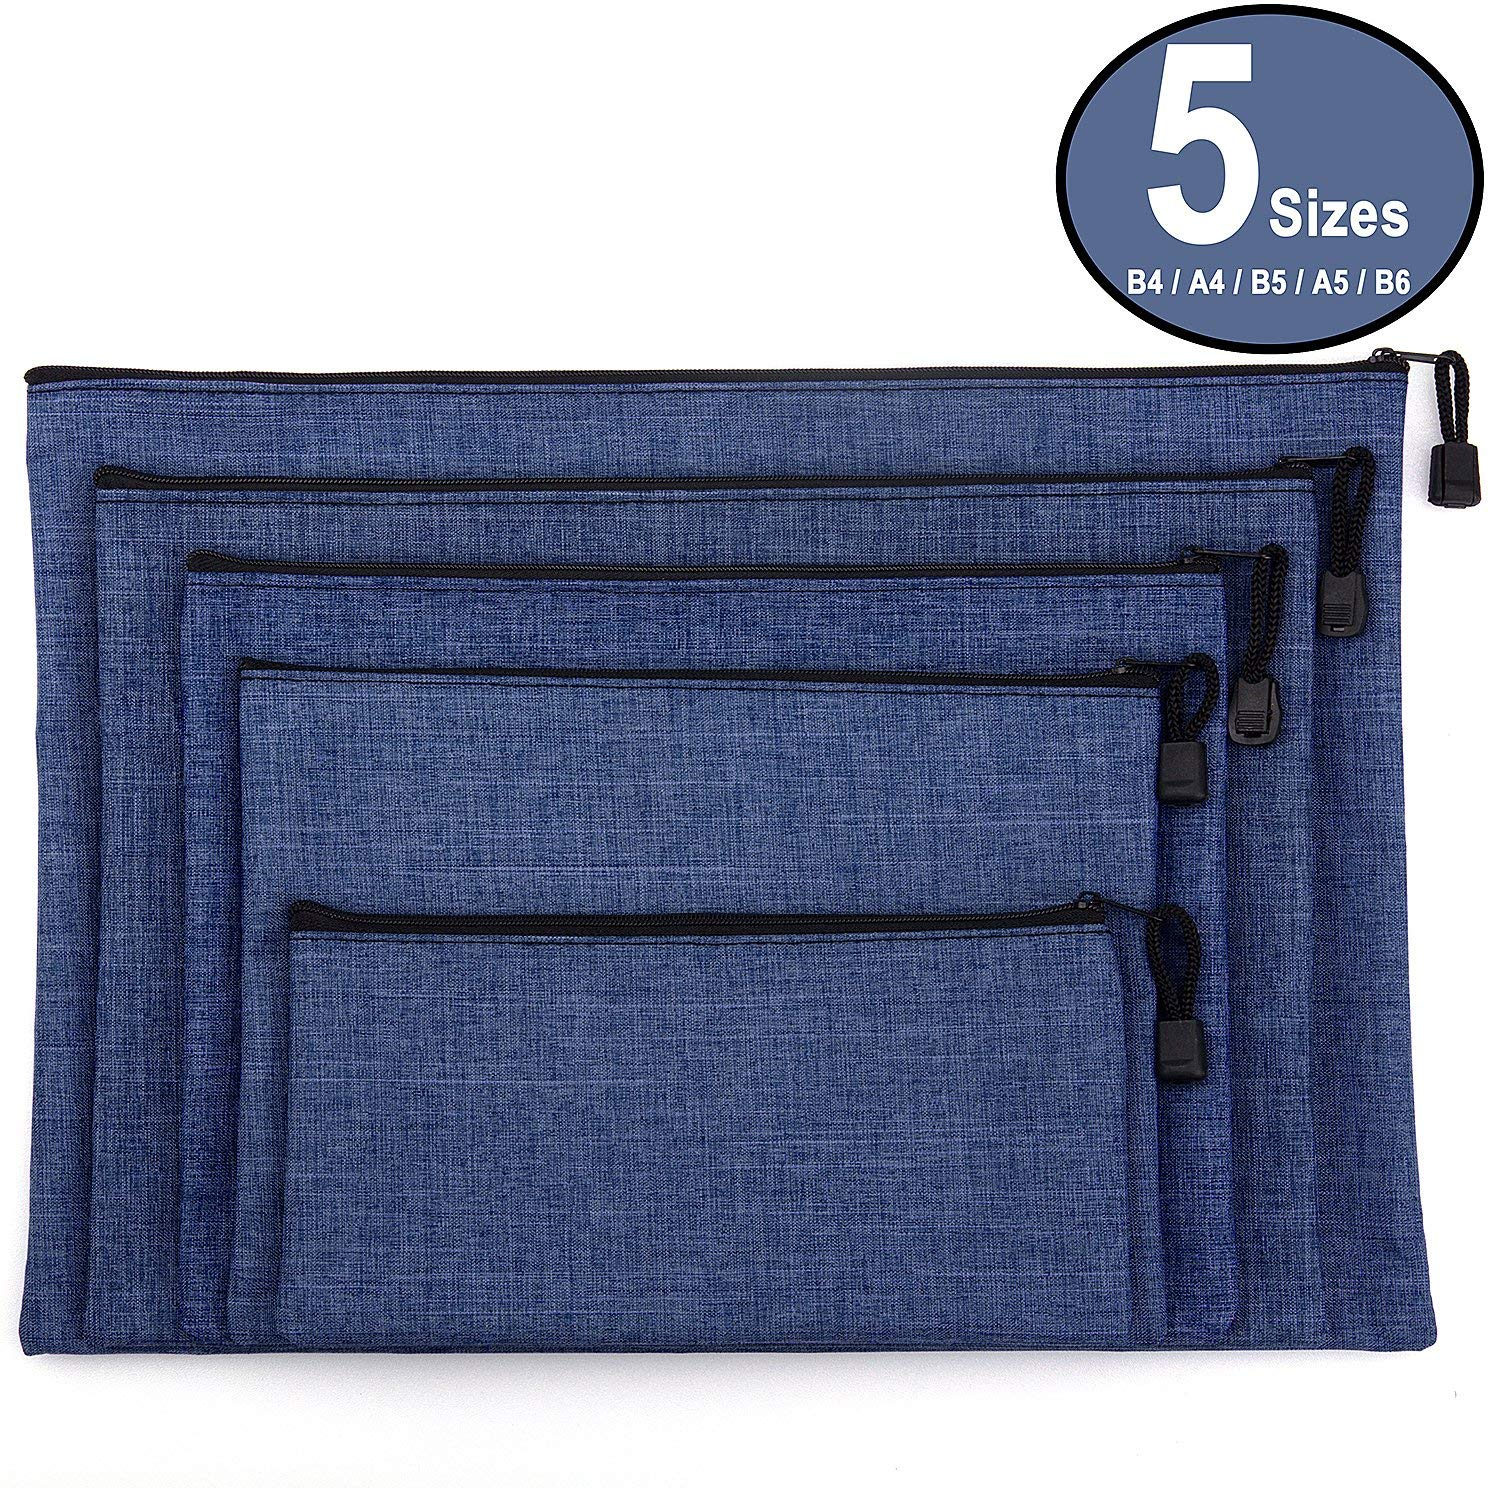 Able Bestir 4pcs Tool Pouch Set Waist Bag Tools Hand Bag Oxford Composite Material No.05144 Wholesale And Retail Freeshipping Less Expensive Tool Parts